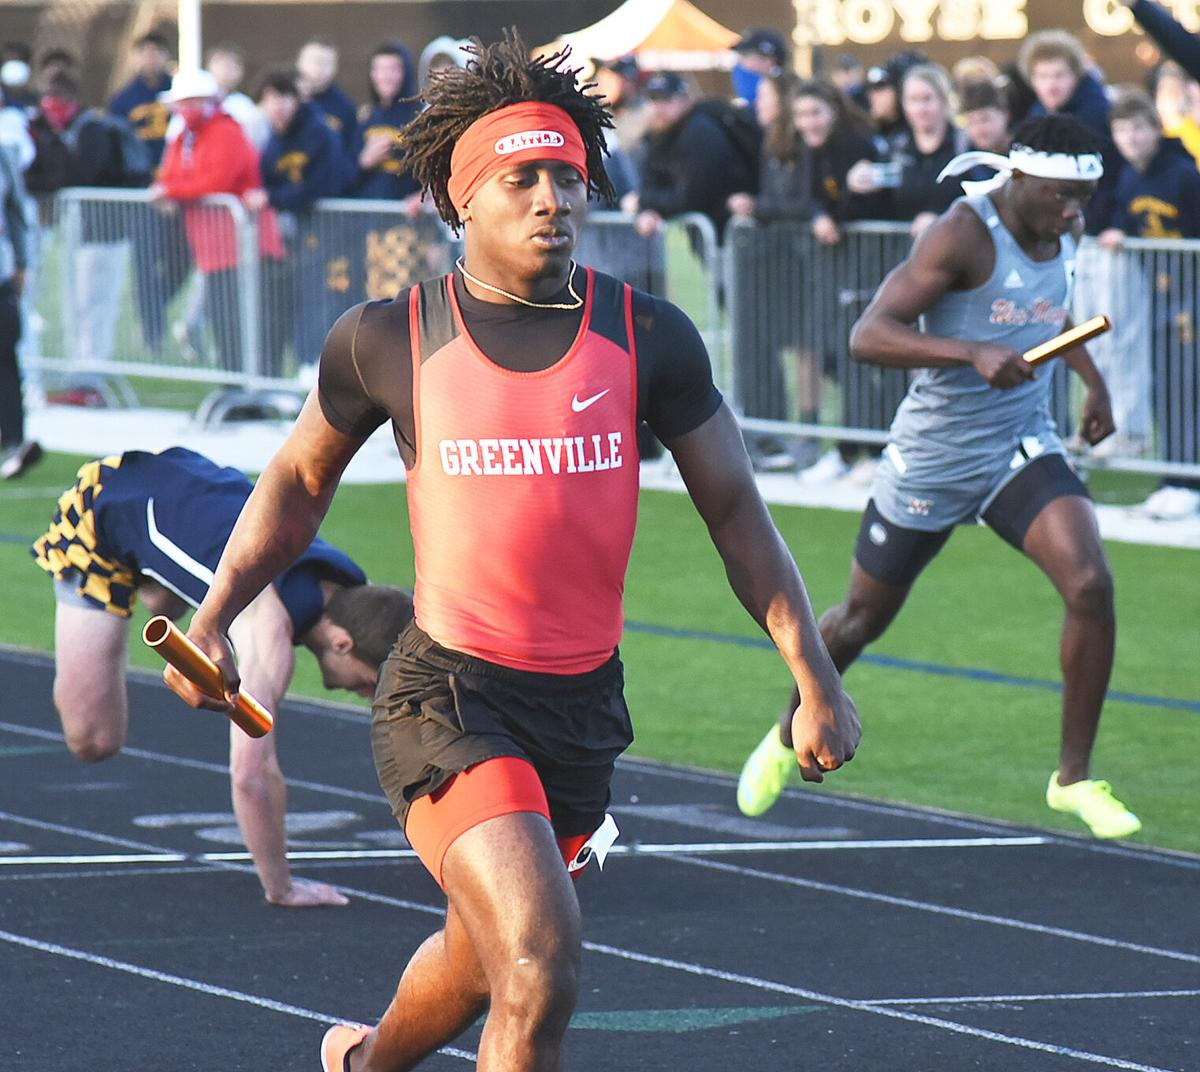 Miles Denson anchors 4x200 relay to victory